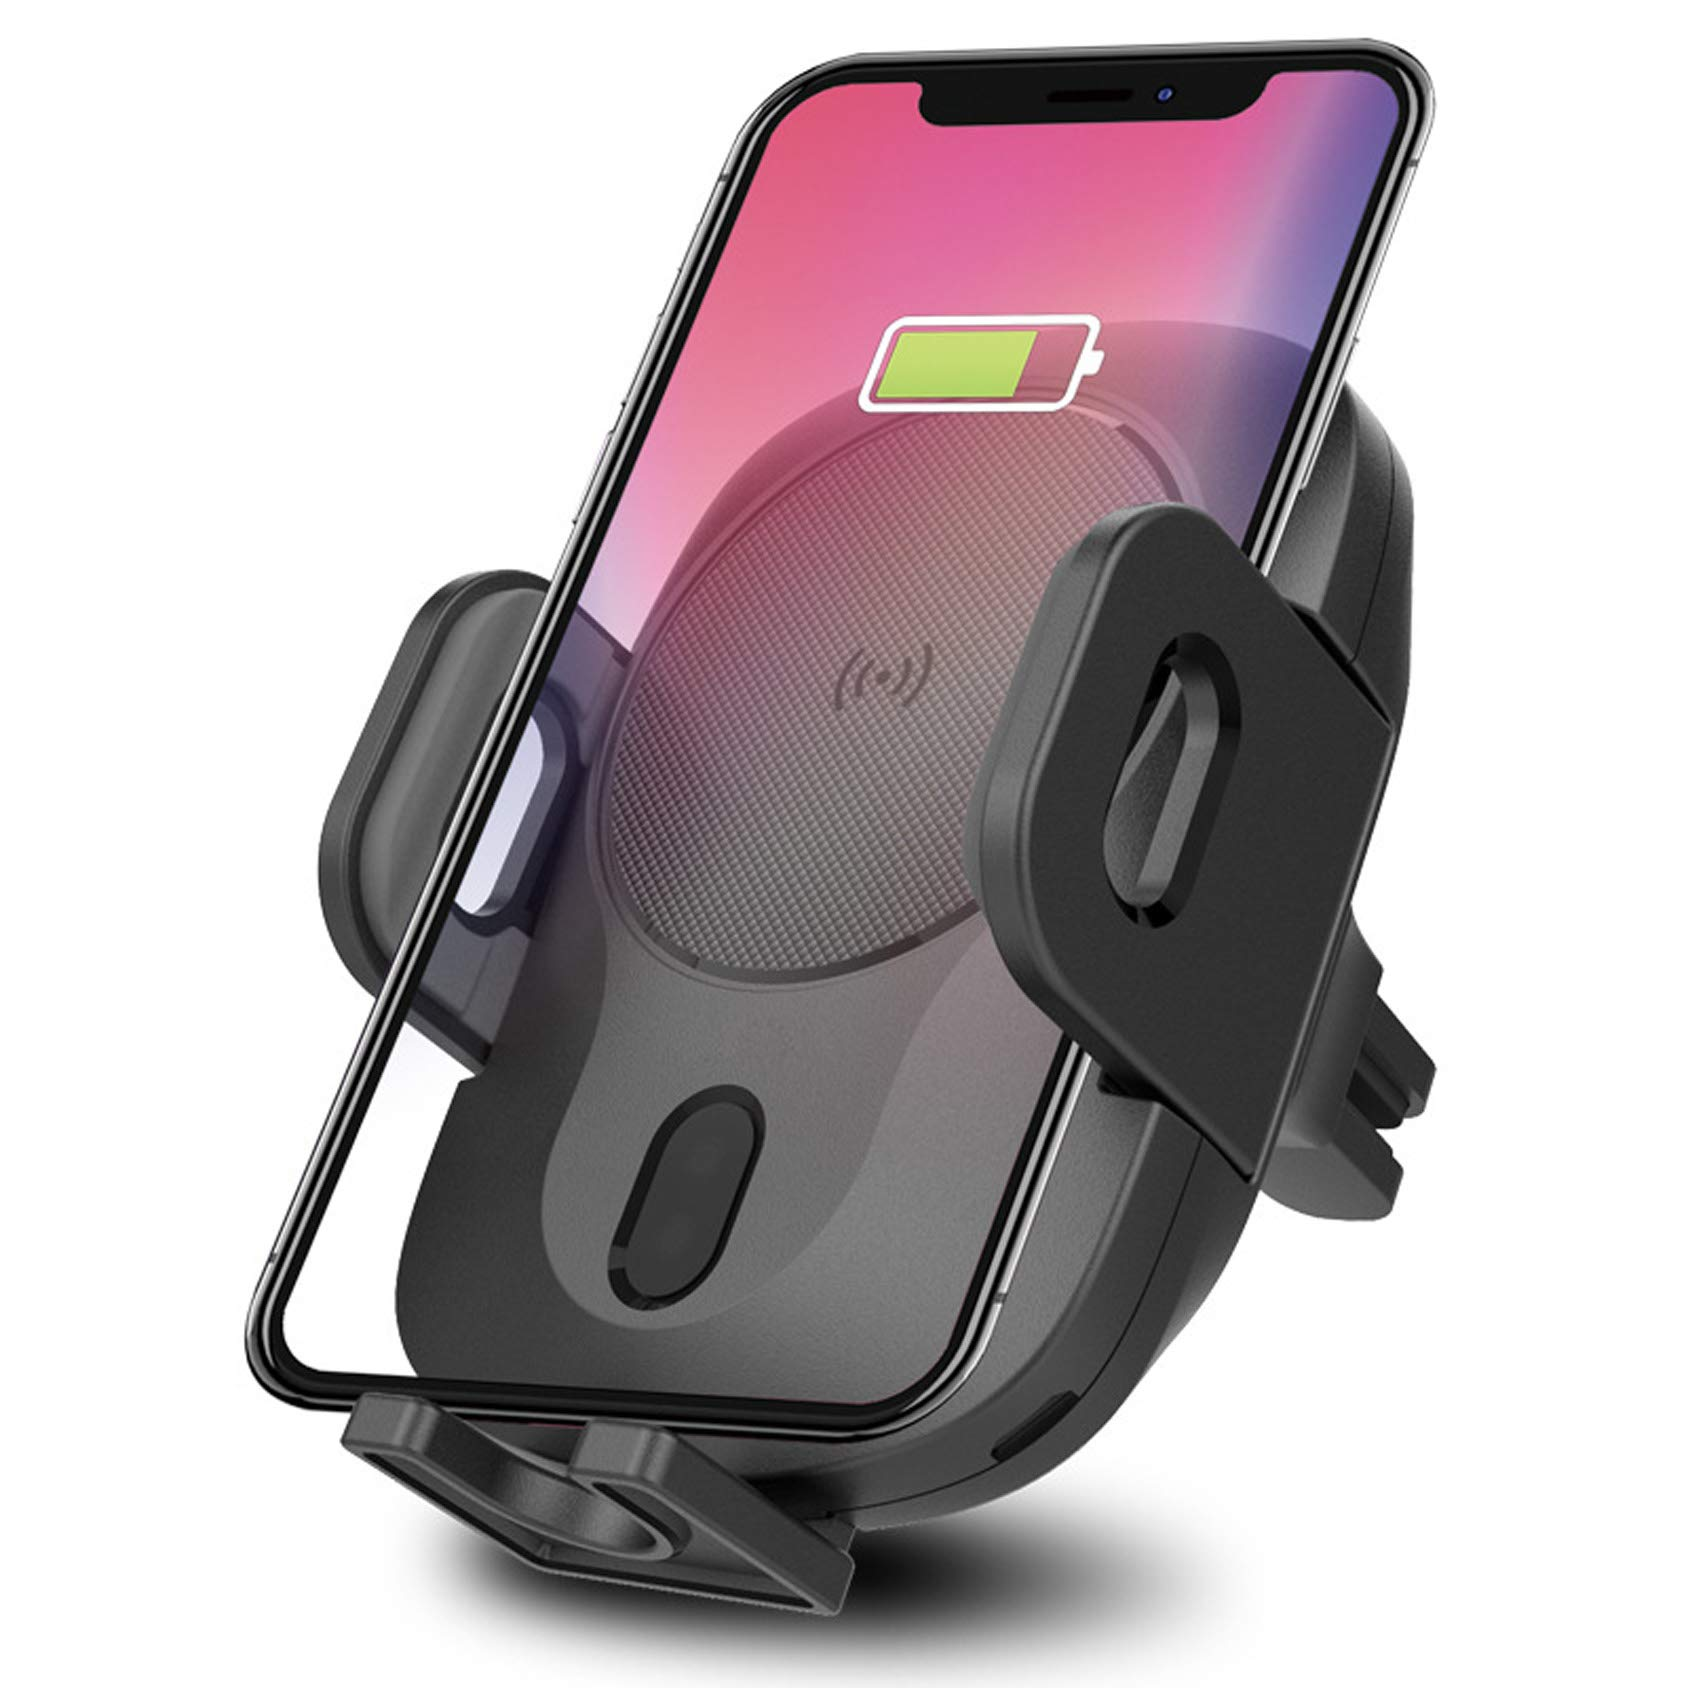 Nesolo 10W QI Wireless Car Charger, Car Mount with Air Vent Phone Holder, Fast Charge for Samsung Galaxy S9, S9 Plus, S8, S8 Plus,Note 8, Note 5, for iPhone X,XR,XS,MAX,8, 8 Plus (with Infrared) by Nesolo